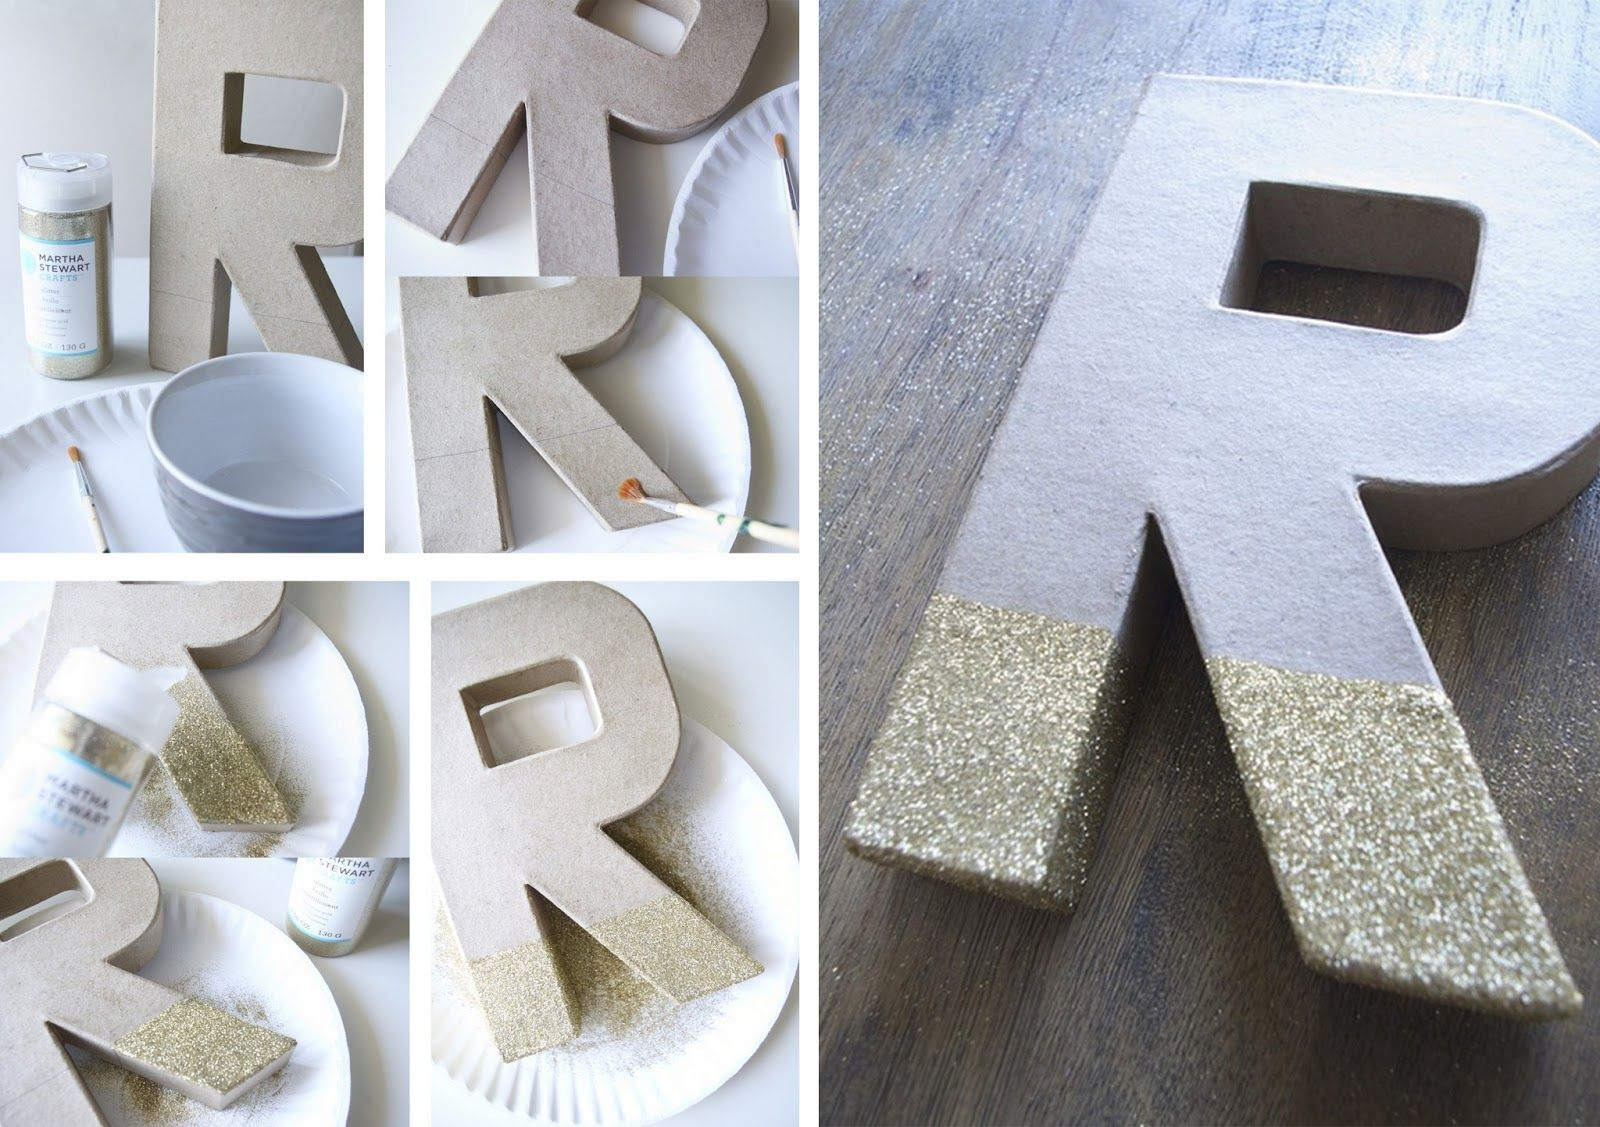 Diy Letras Decorativas Letras Diy Manualidades Decorar Personalizar